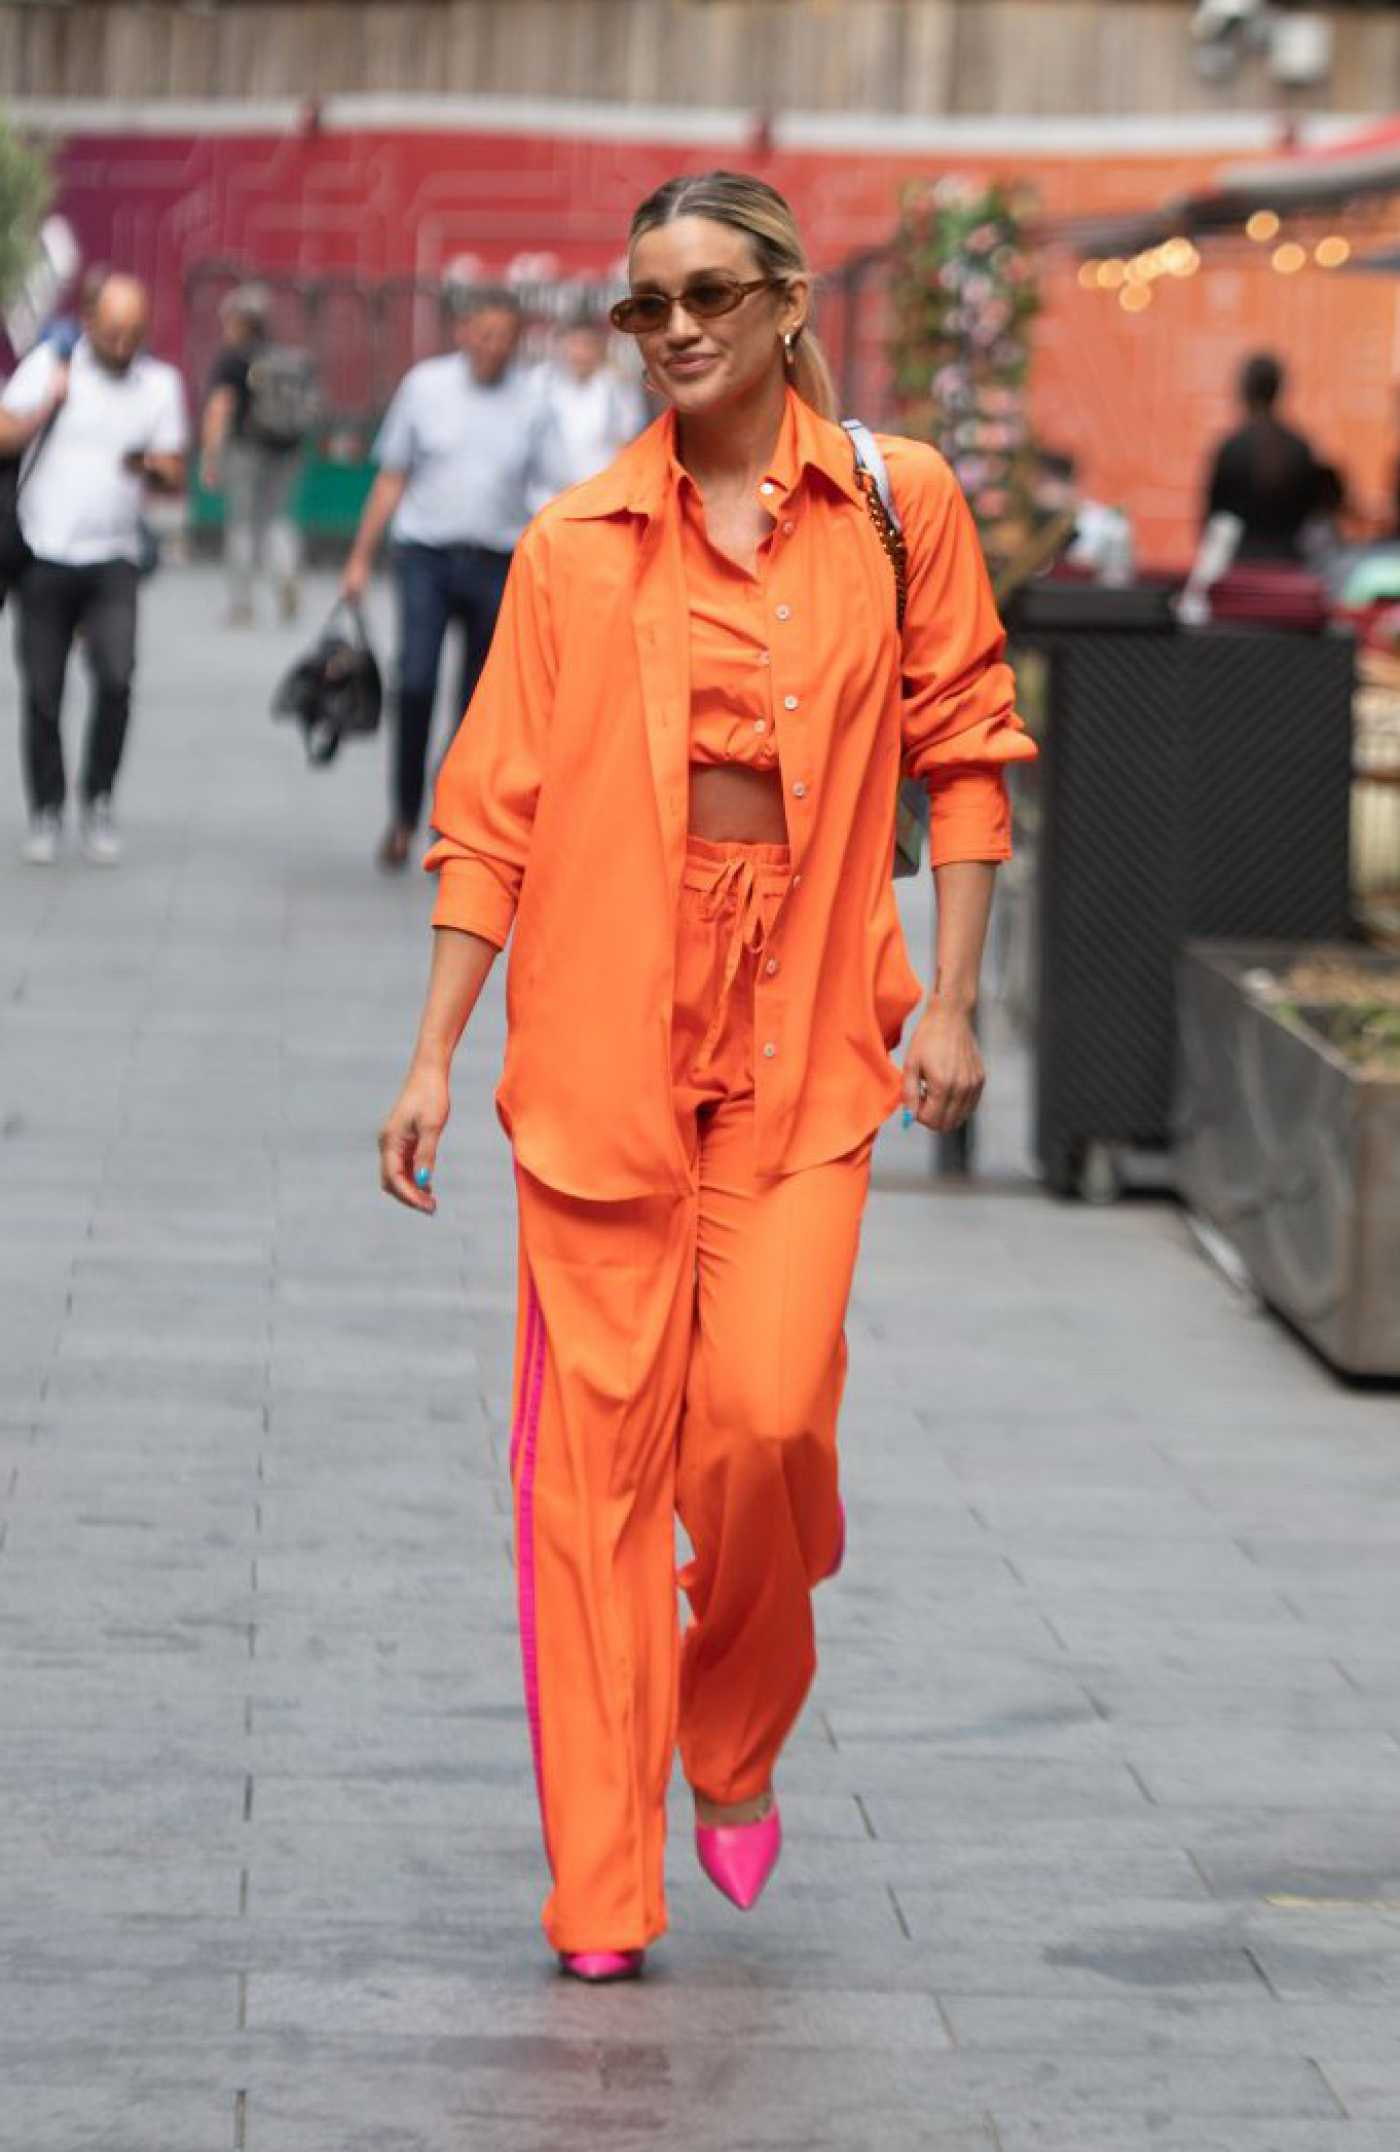 Ashley Roberts in an Orange Suit Arrives at the Global Radio in London 07/09/2021